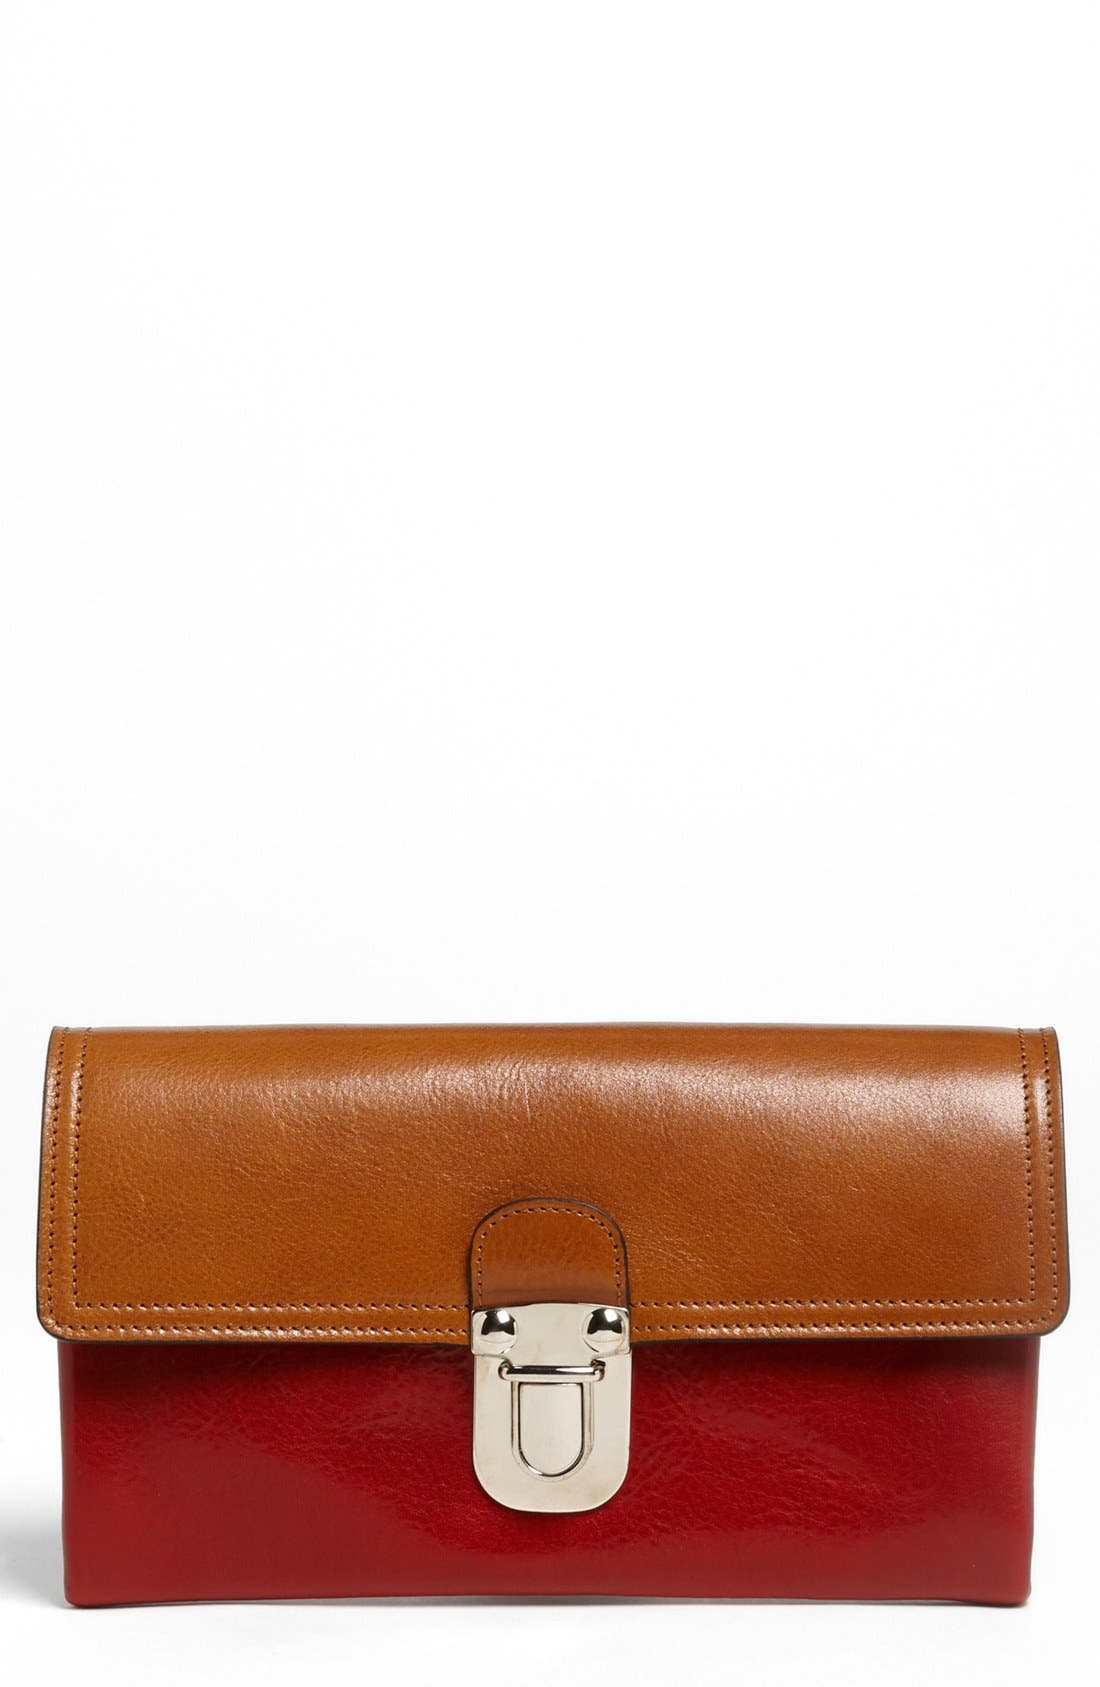 Main Image - Marni 'Small Padlock' Clutch